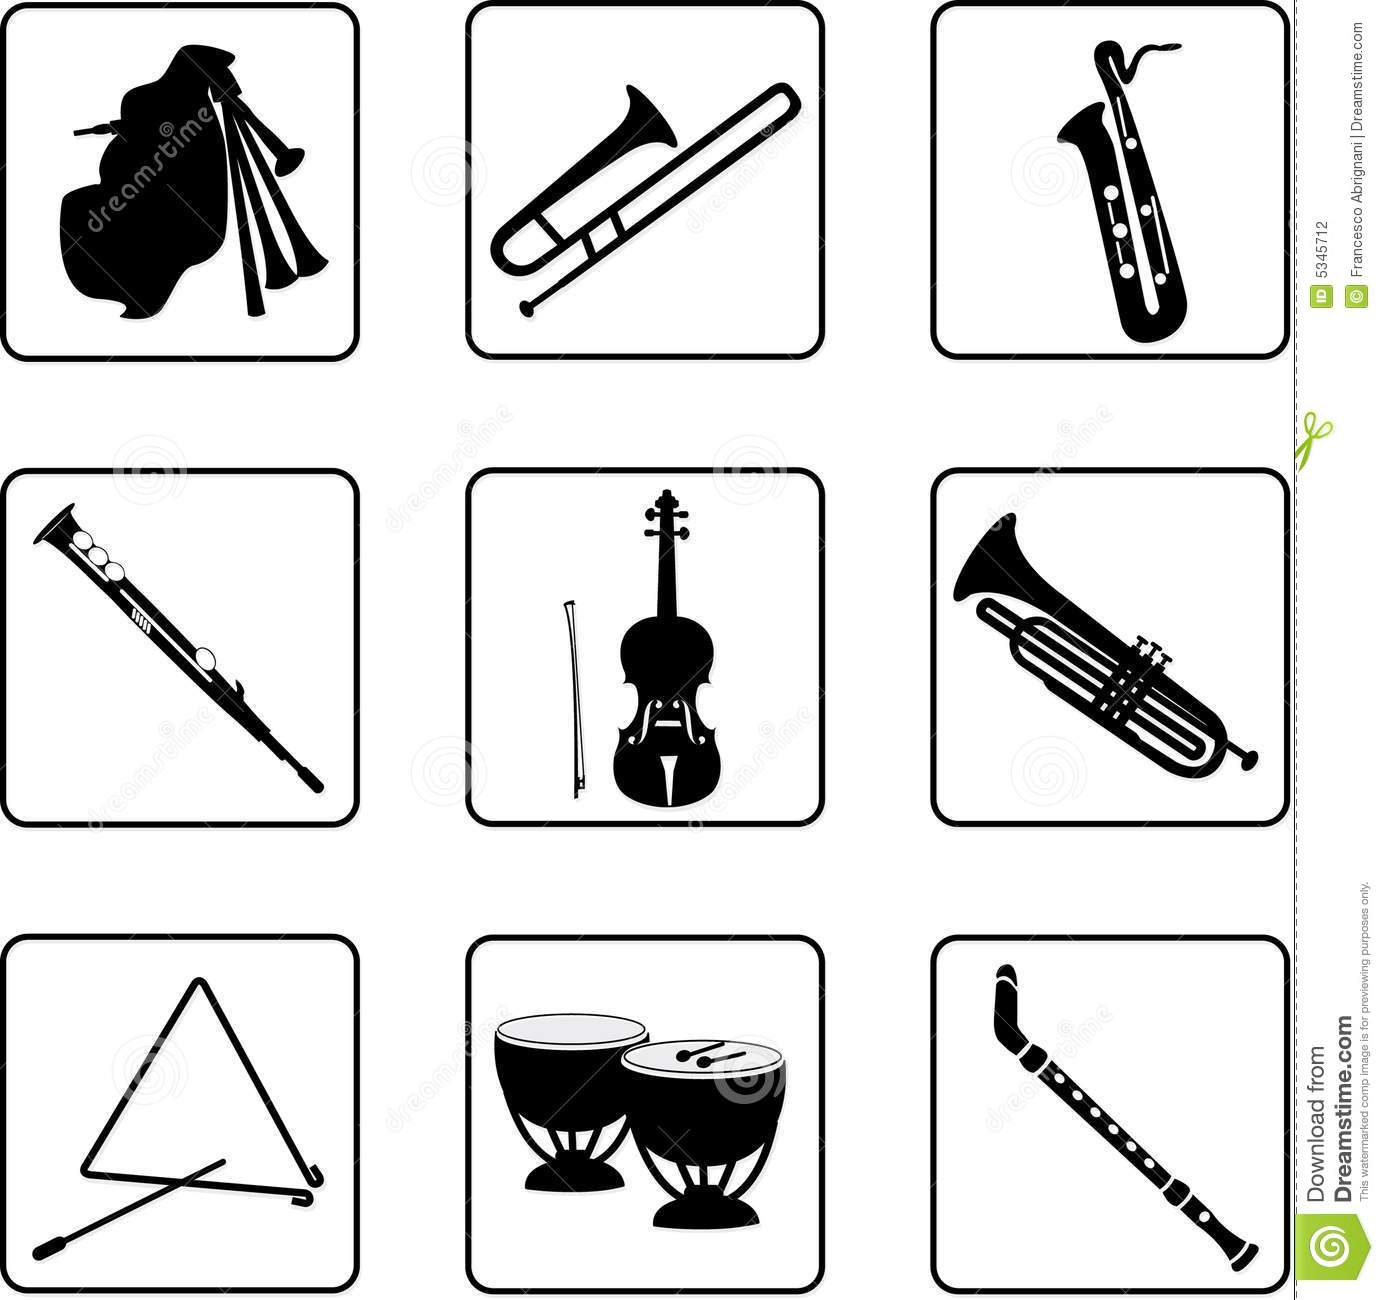 music instruments clipart black and white - photo #23